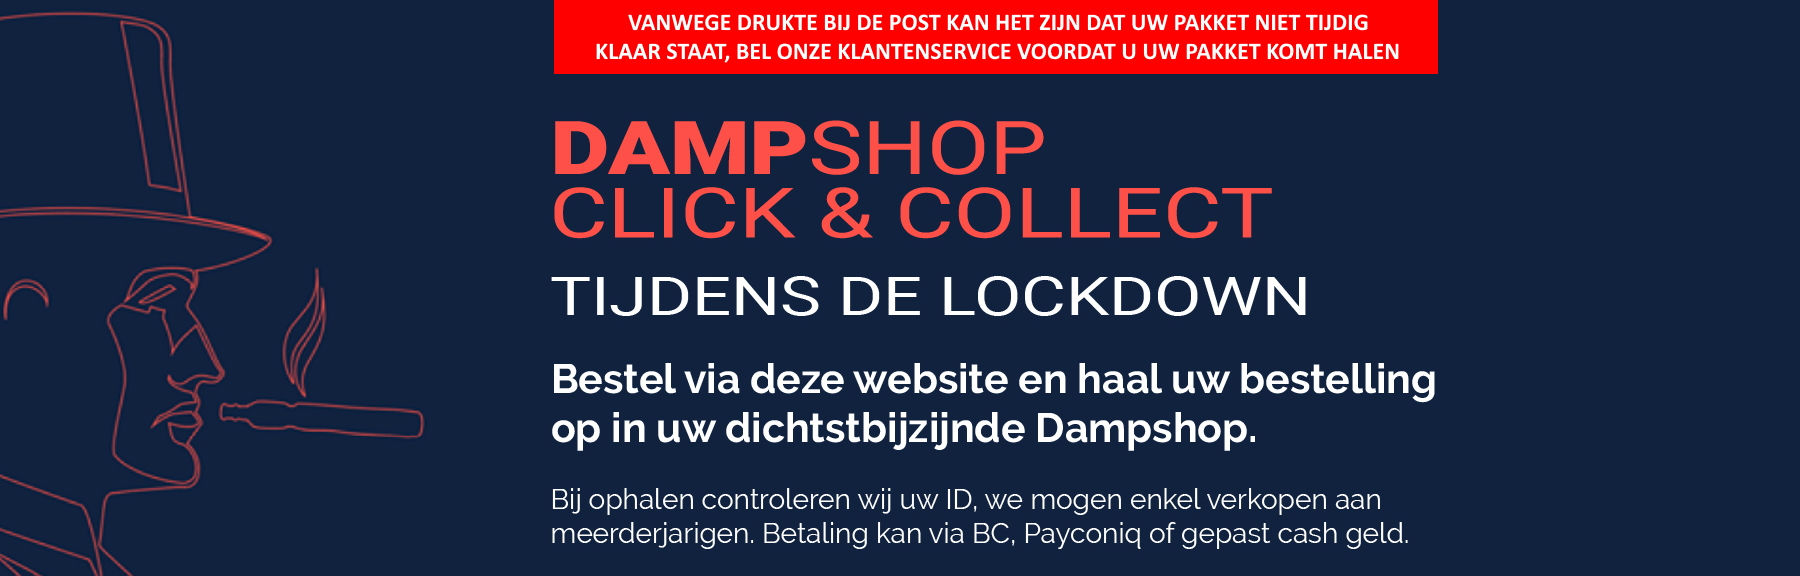 Dampshop banner